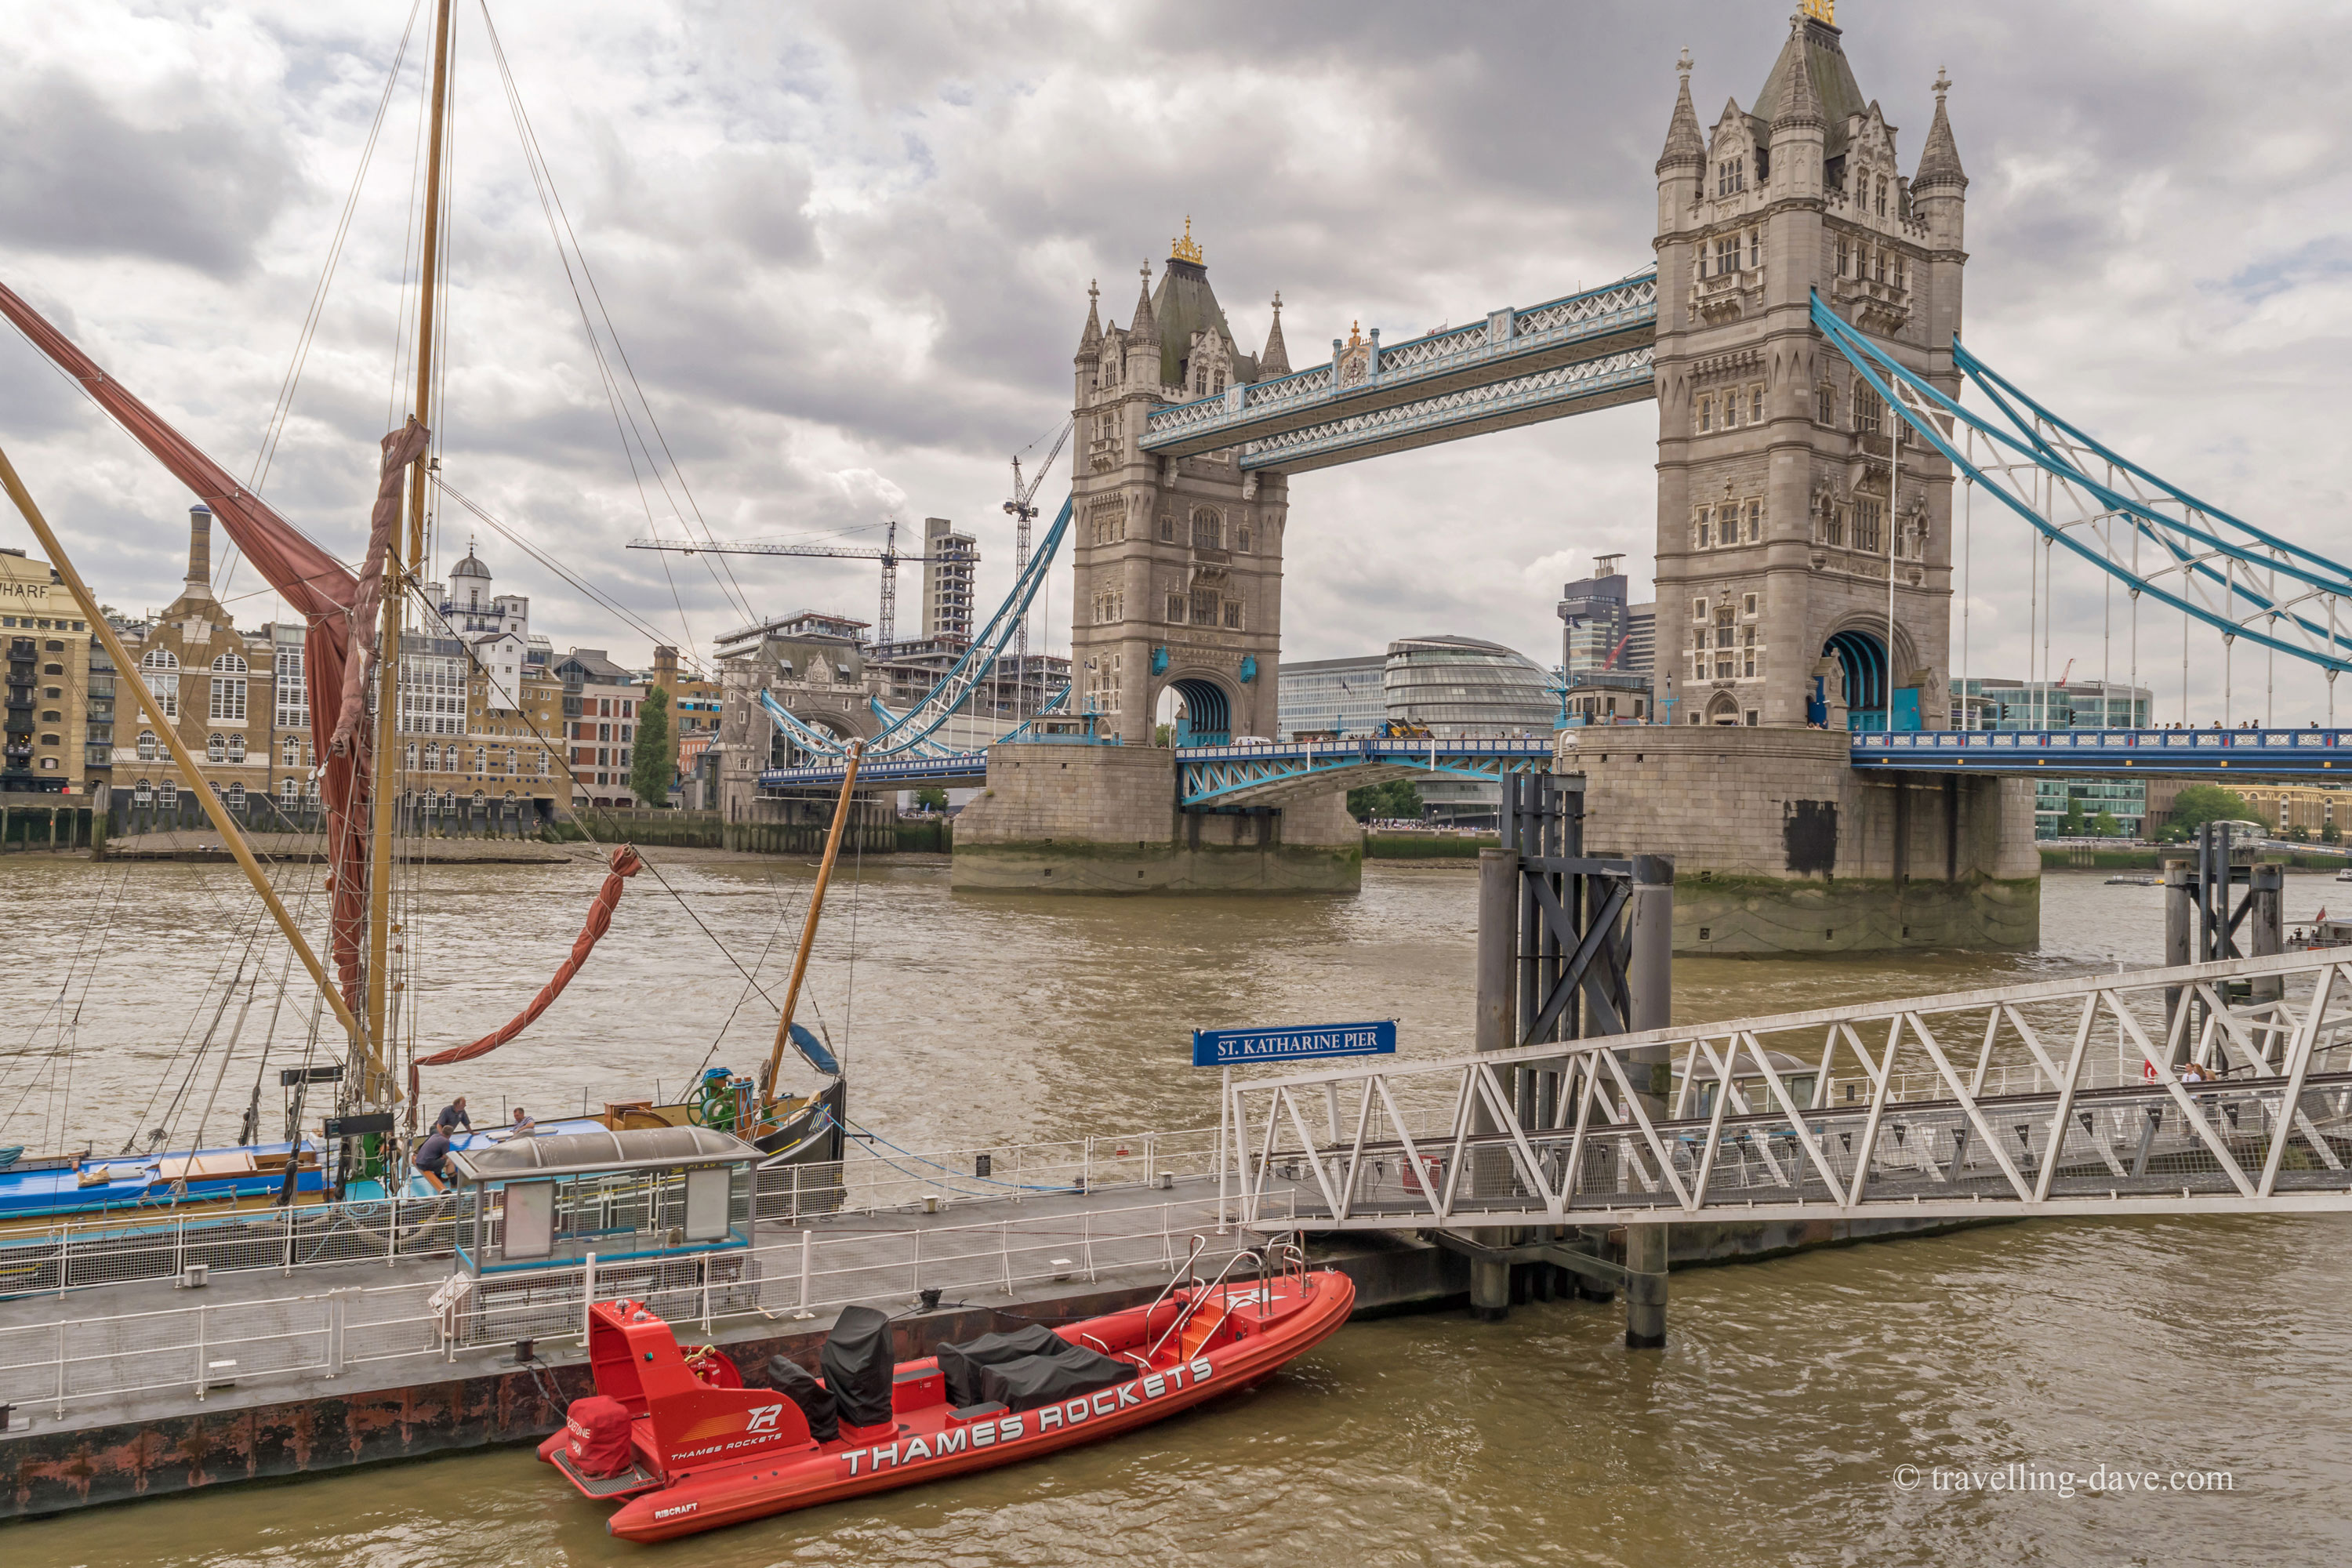 View of Tower Bridge and St.Katharine's Pier in London